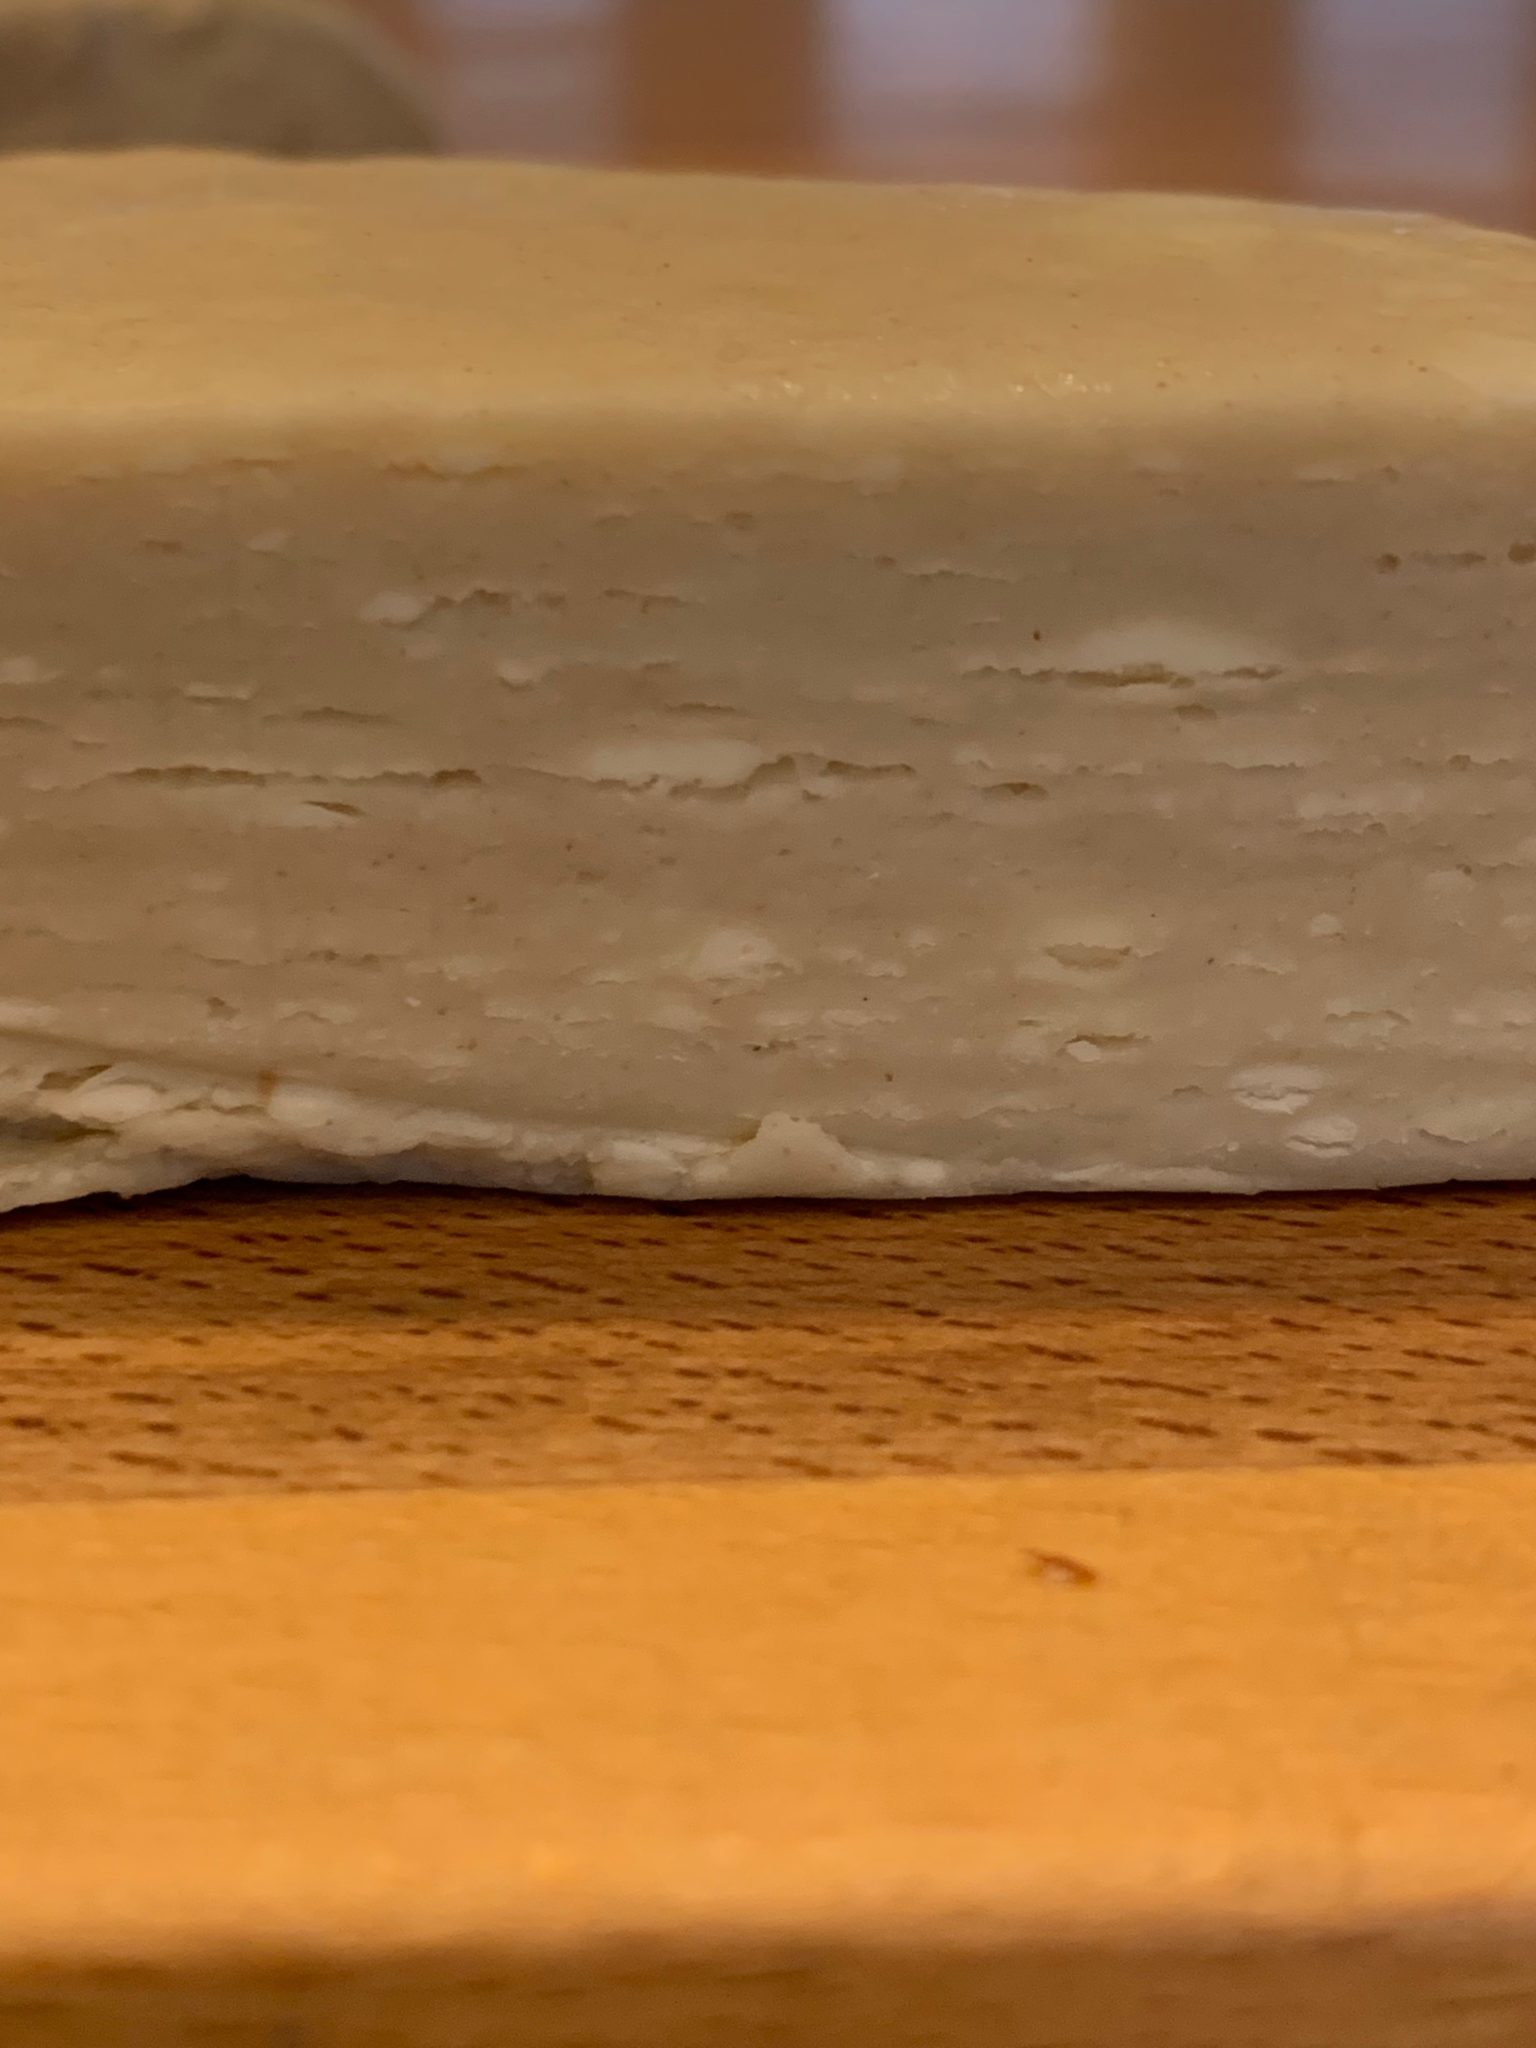 Layers of rough puff pastry